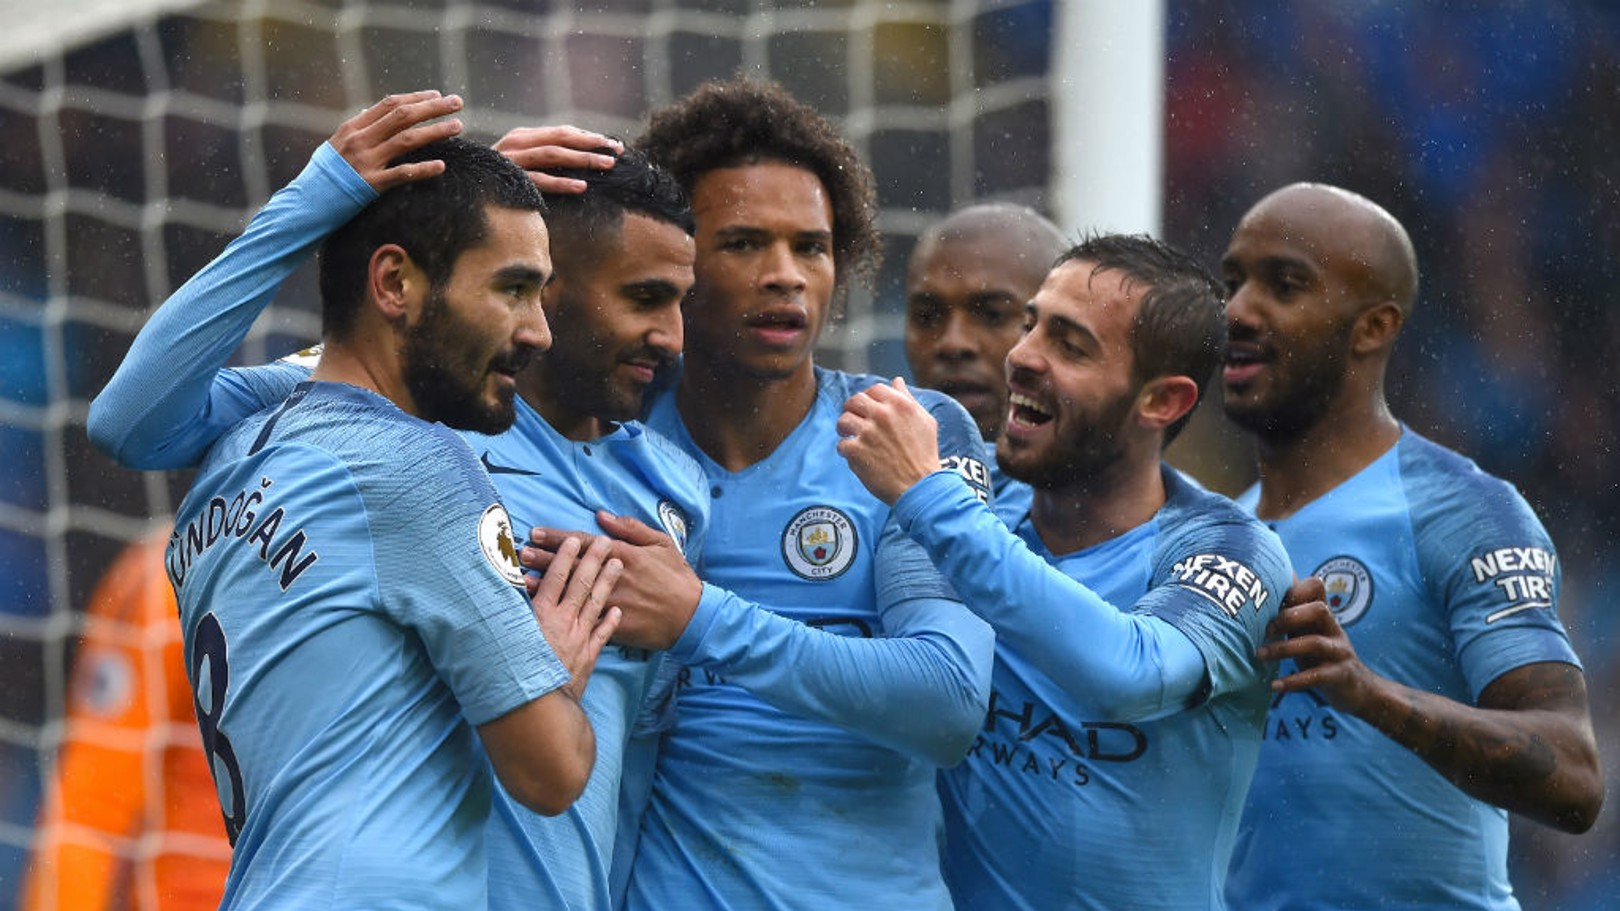 THAT'S MORE LIKE IT: City celebrate